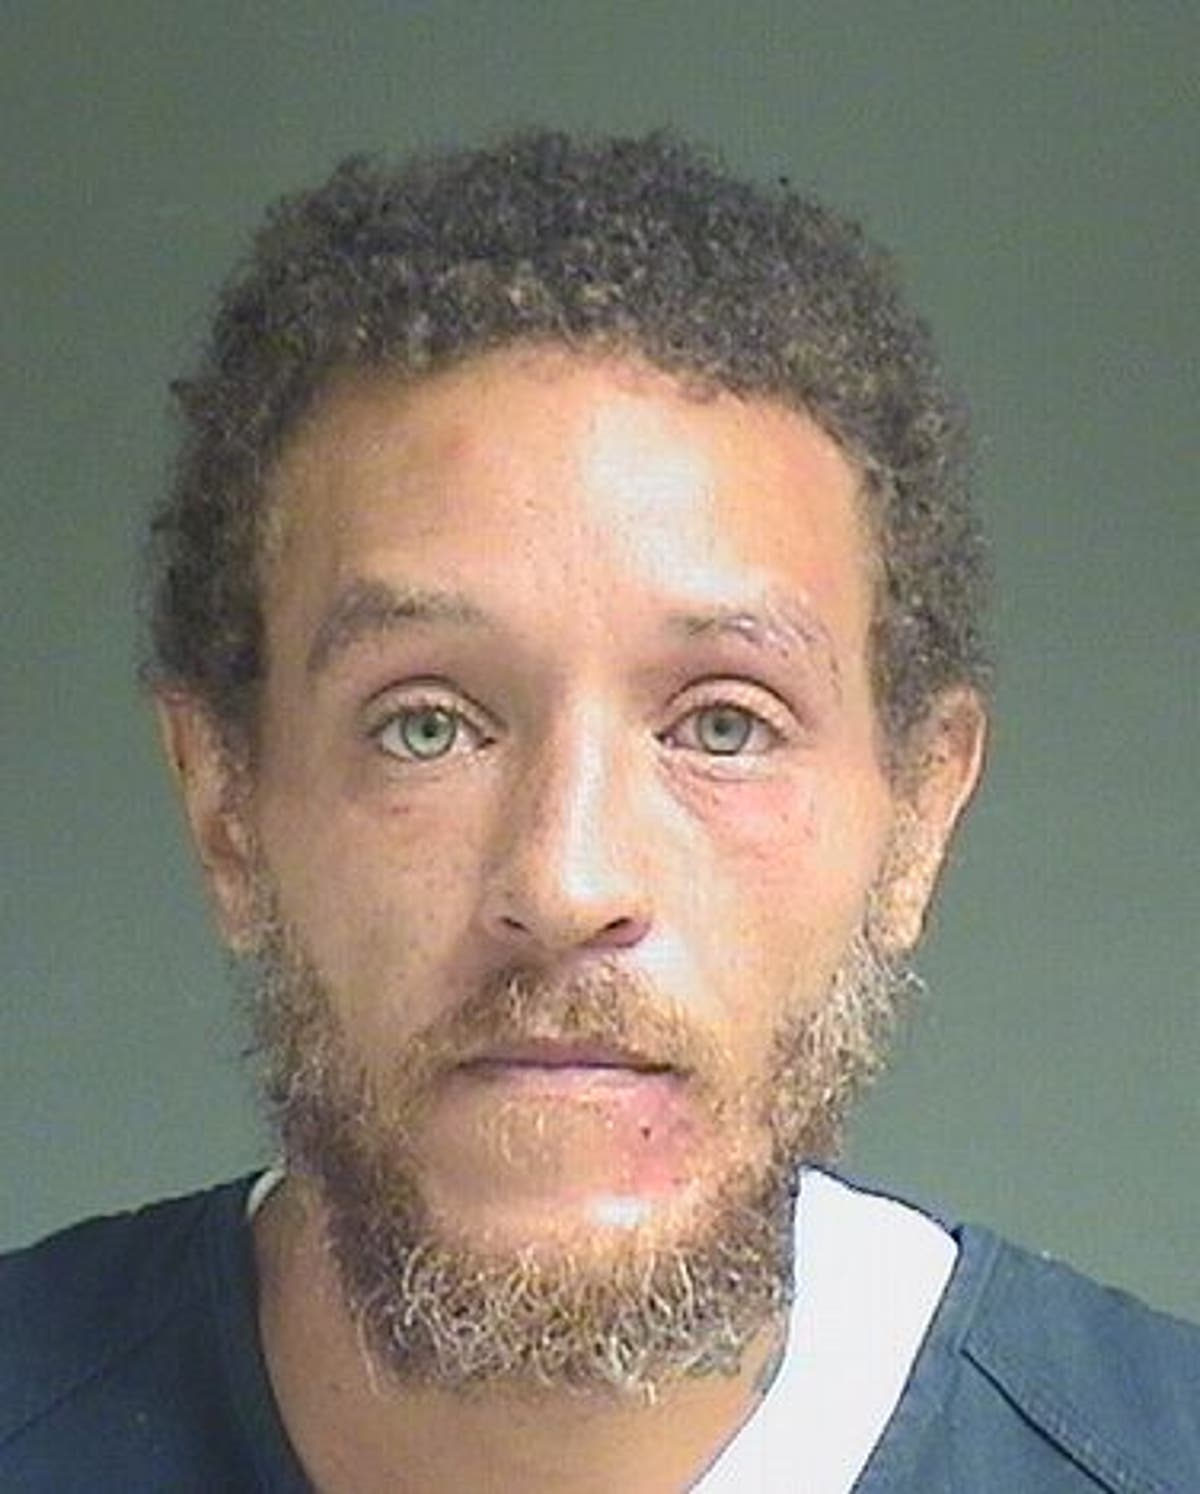 Ex-NBA star Delonte West arrested a year after viral panhandling photo